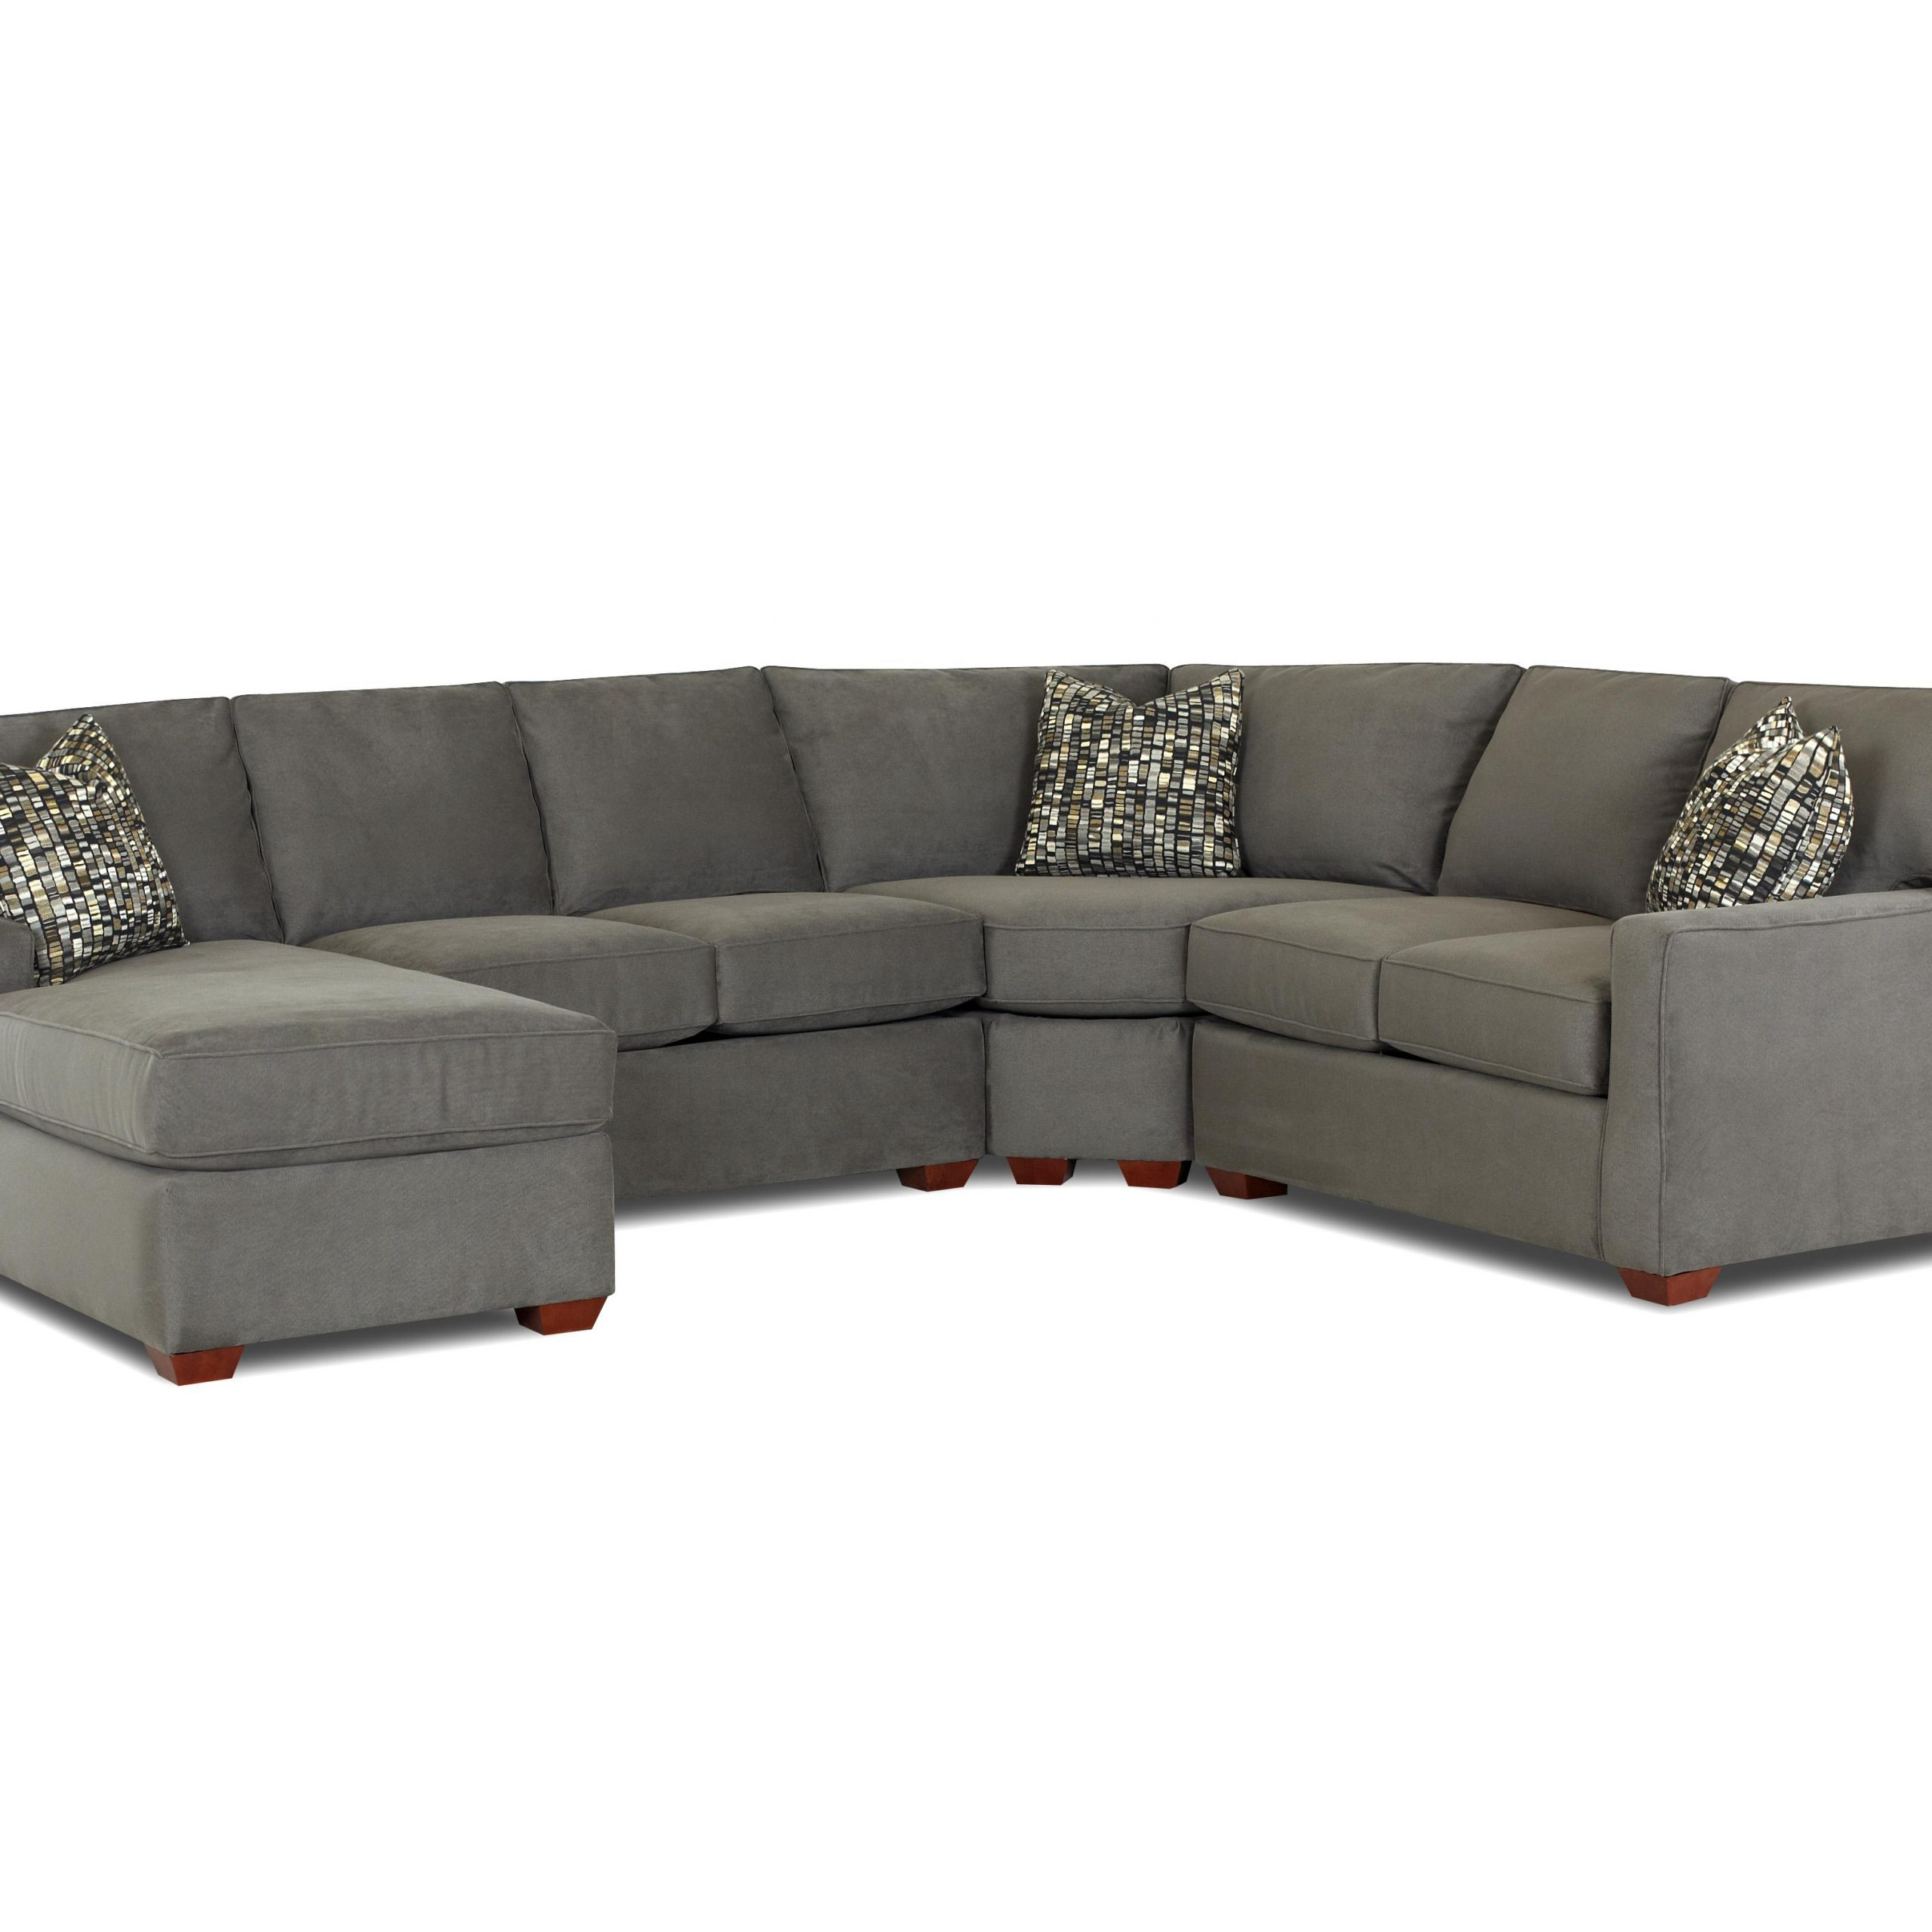 Copenhagen Reclining Sectional Sofas With Right Storage Chaise In Most Popular Contemporary L Shaped Sectional Sofa With Right Arm Facing (View 16 of 25)